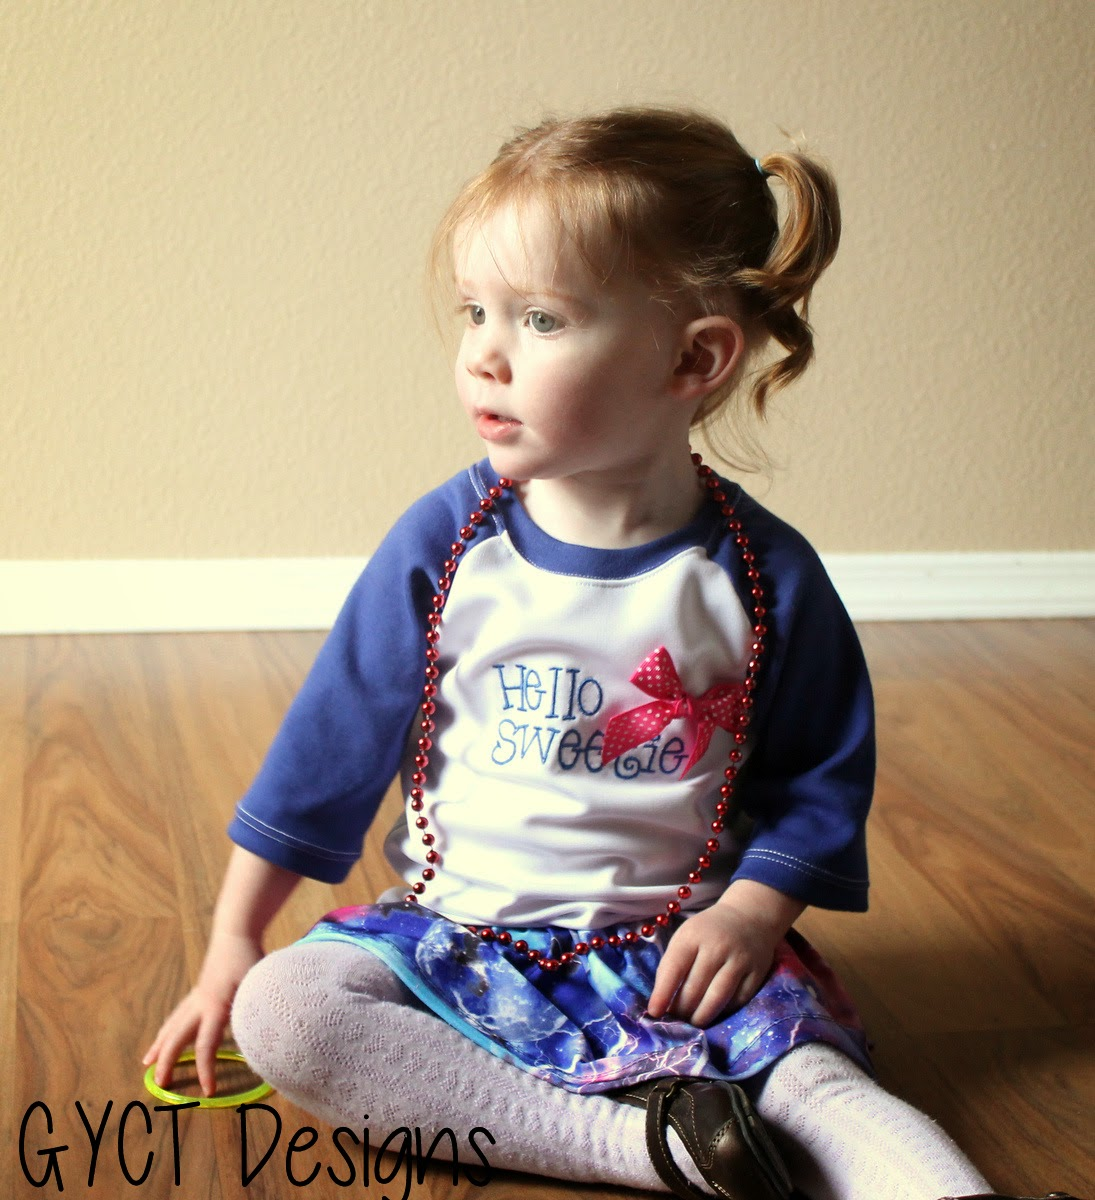 Doctor Who Inspired Kids Outfit by GYCT